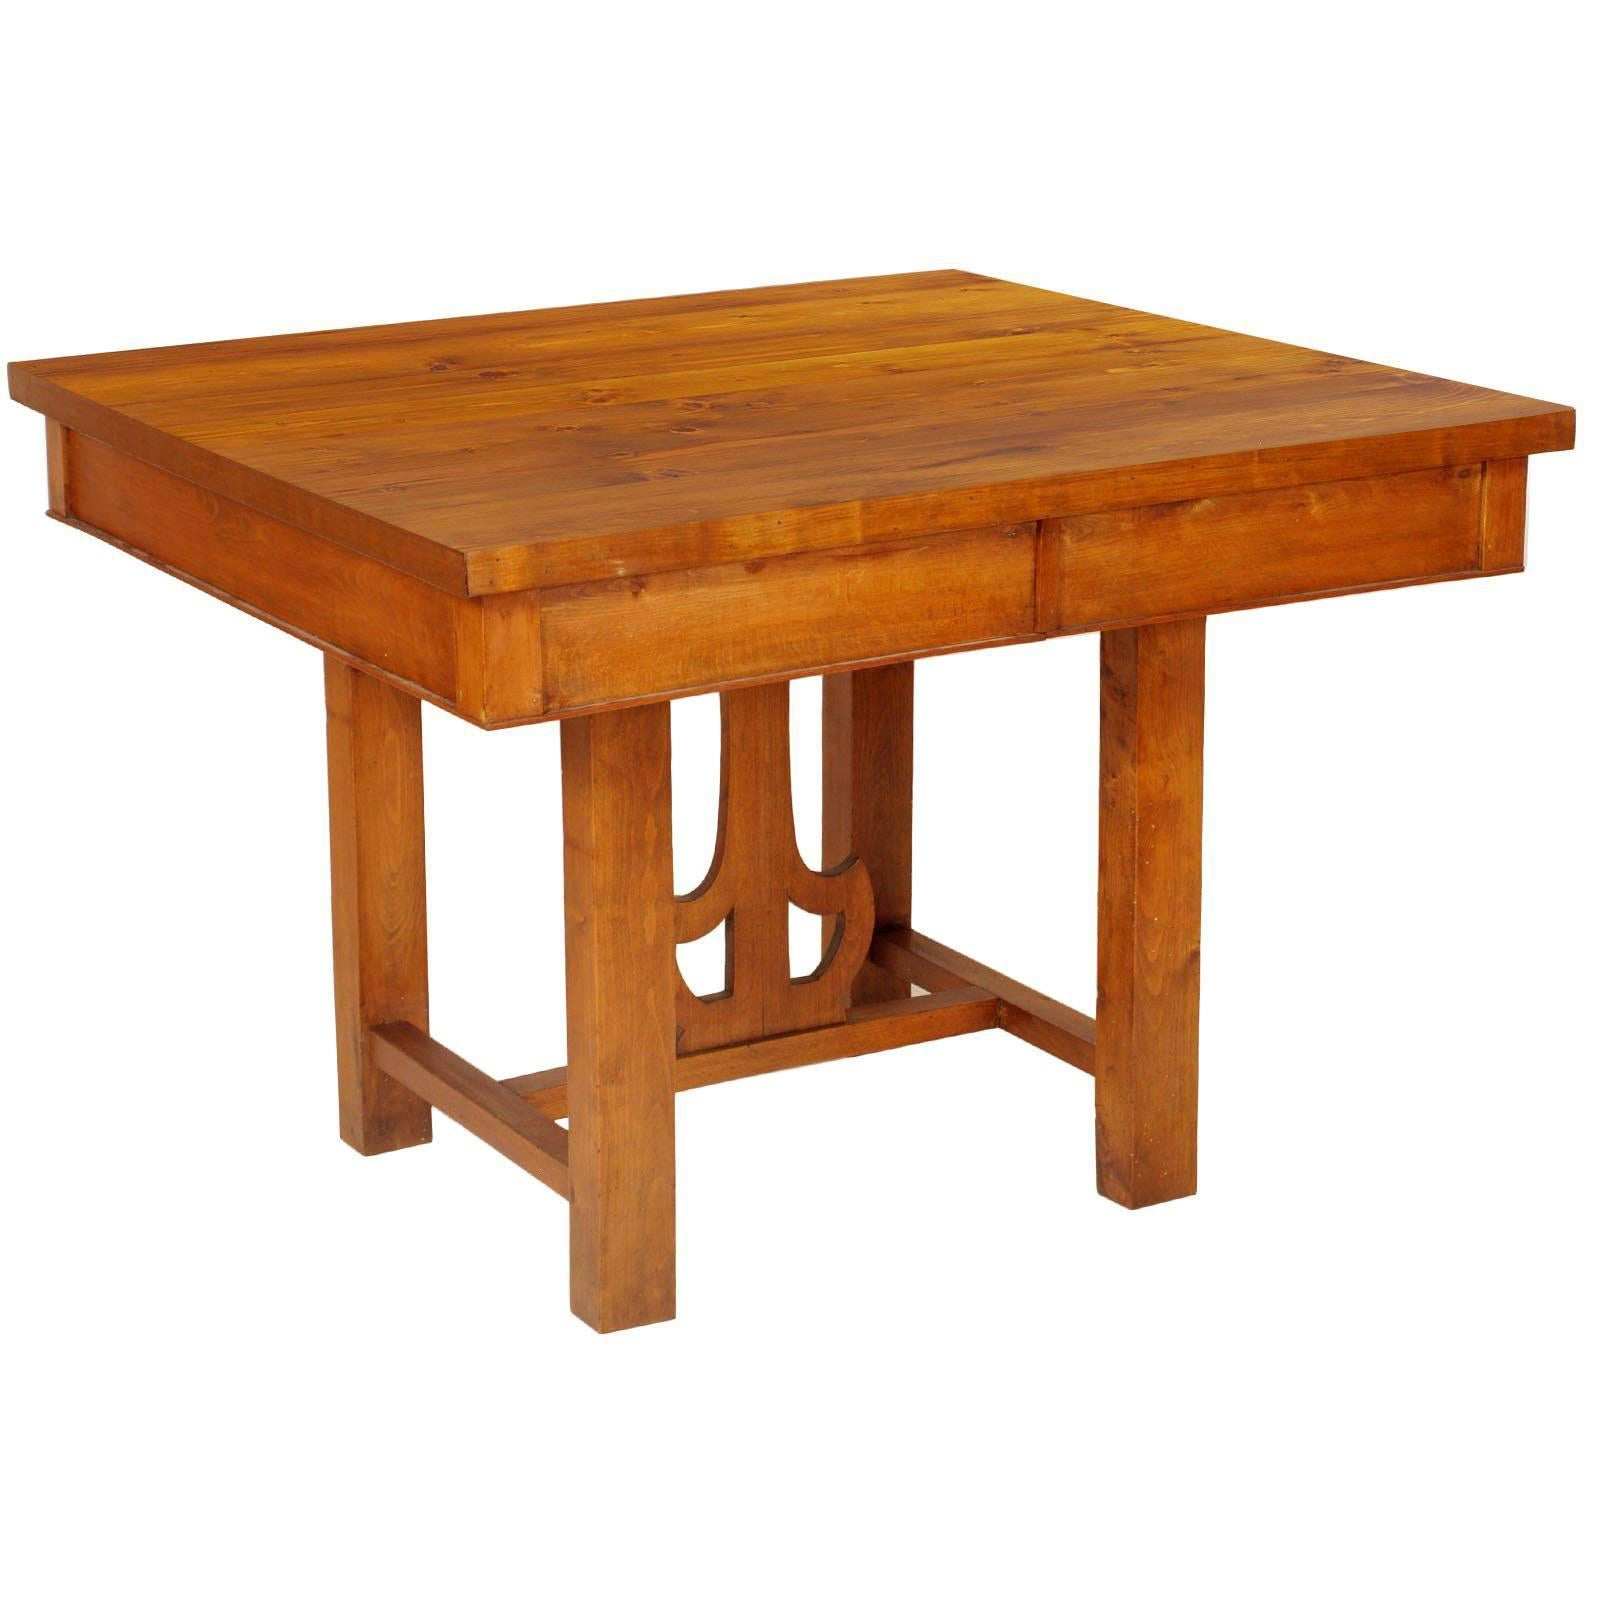 1910s Tirolean Art Nouveau Table, Solid Larch and Fir Restored and Wax-Polished